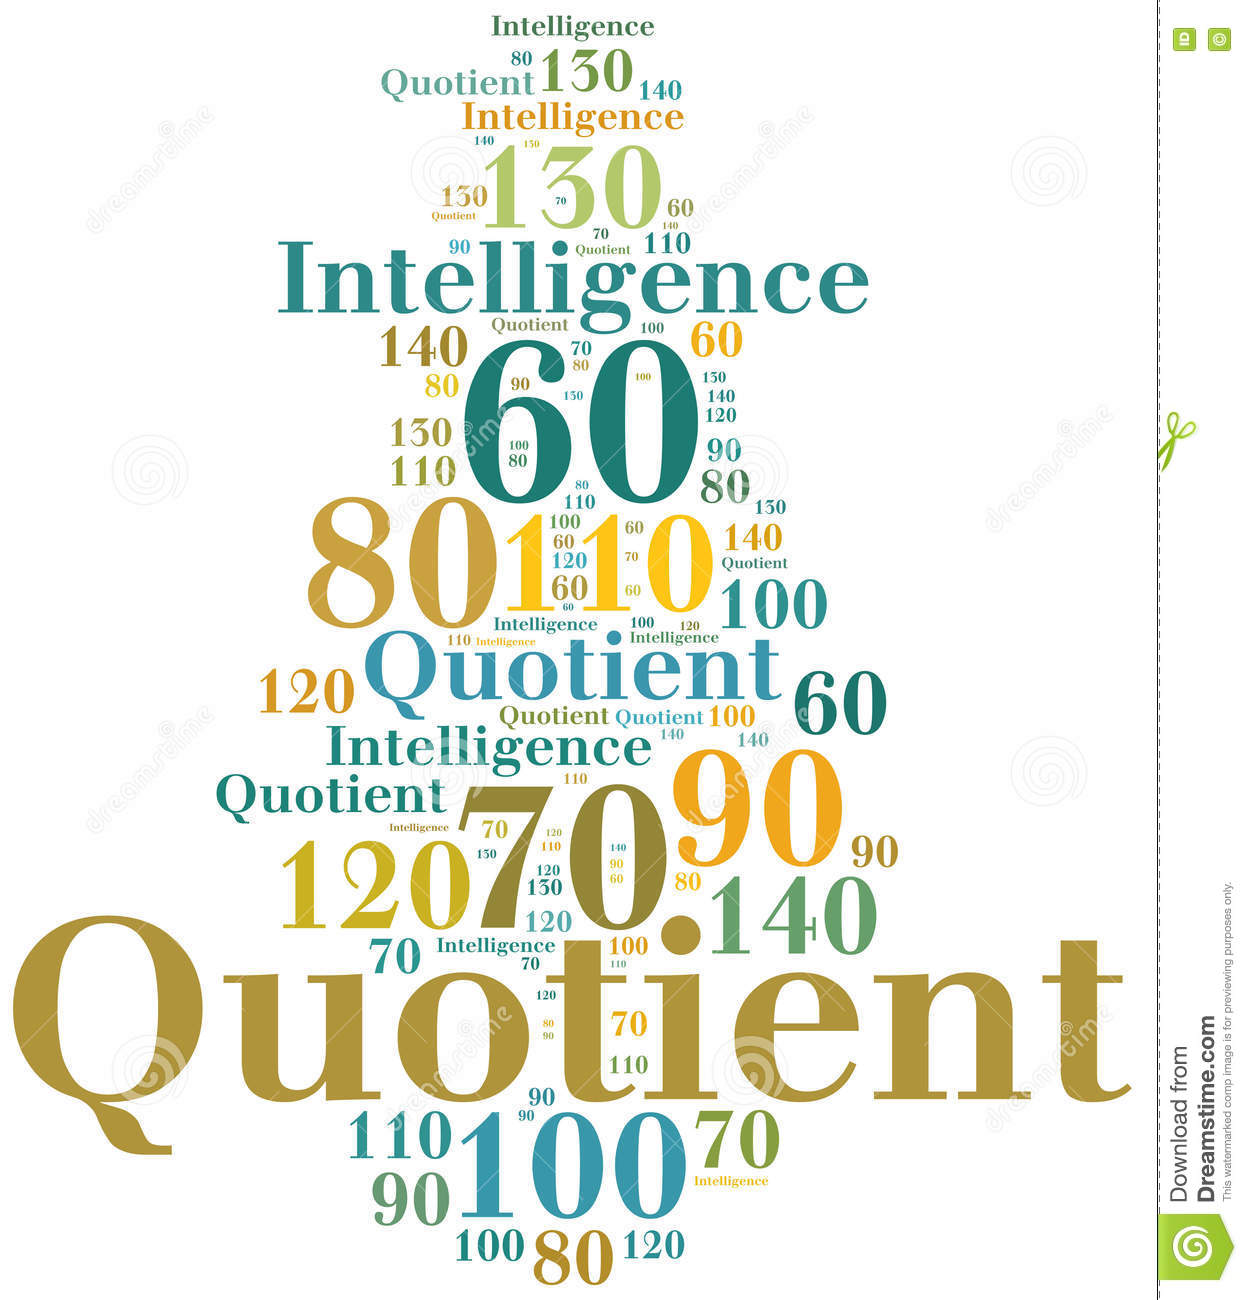 iq intelligent quotient Information on intelligence quotient tests including the average iq level, and a chart explaining the various levels of iq classifications.